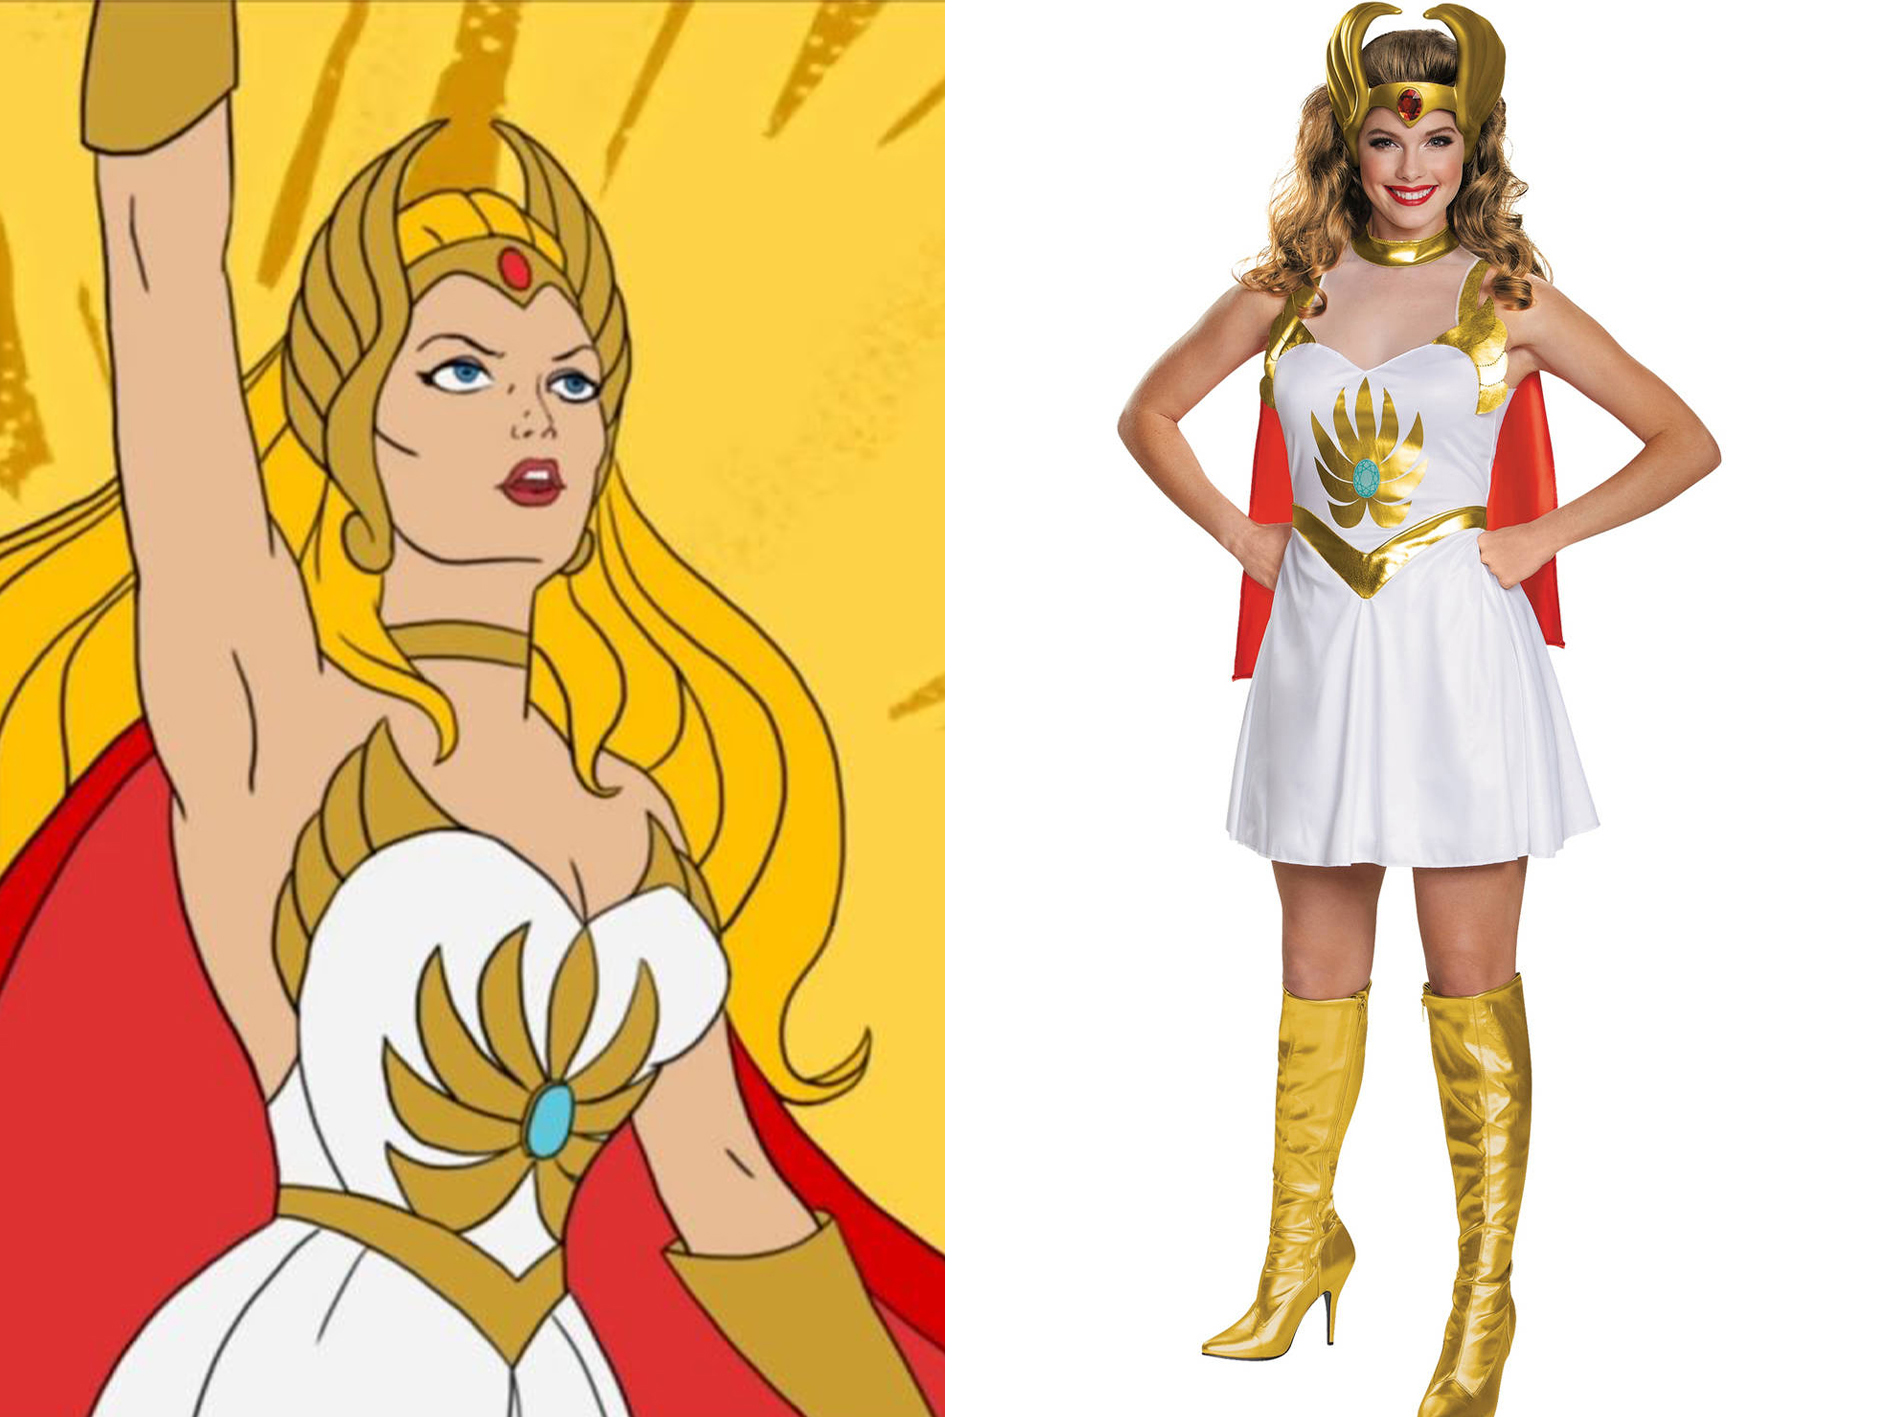 She Ra 1 15 Halloween Costumes Inspired By The 80s - Who Will You Go As?